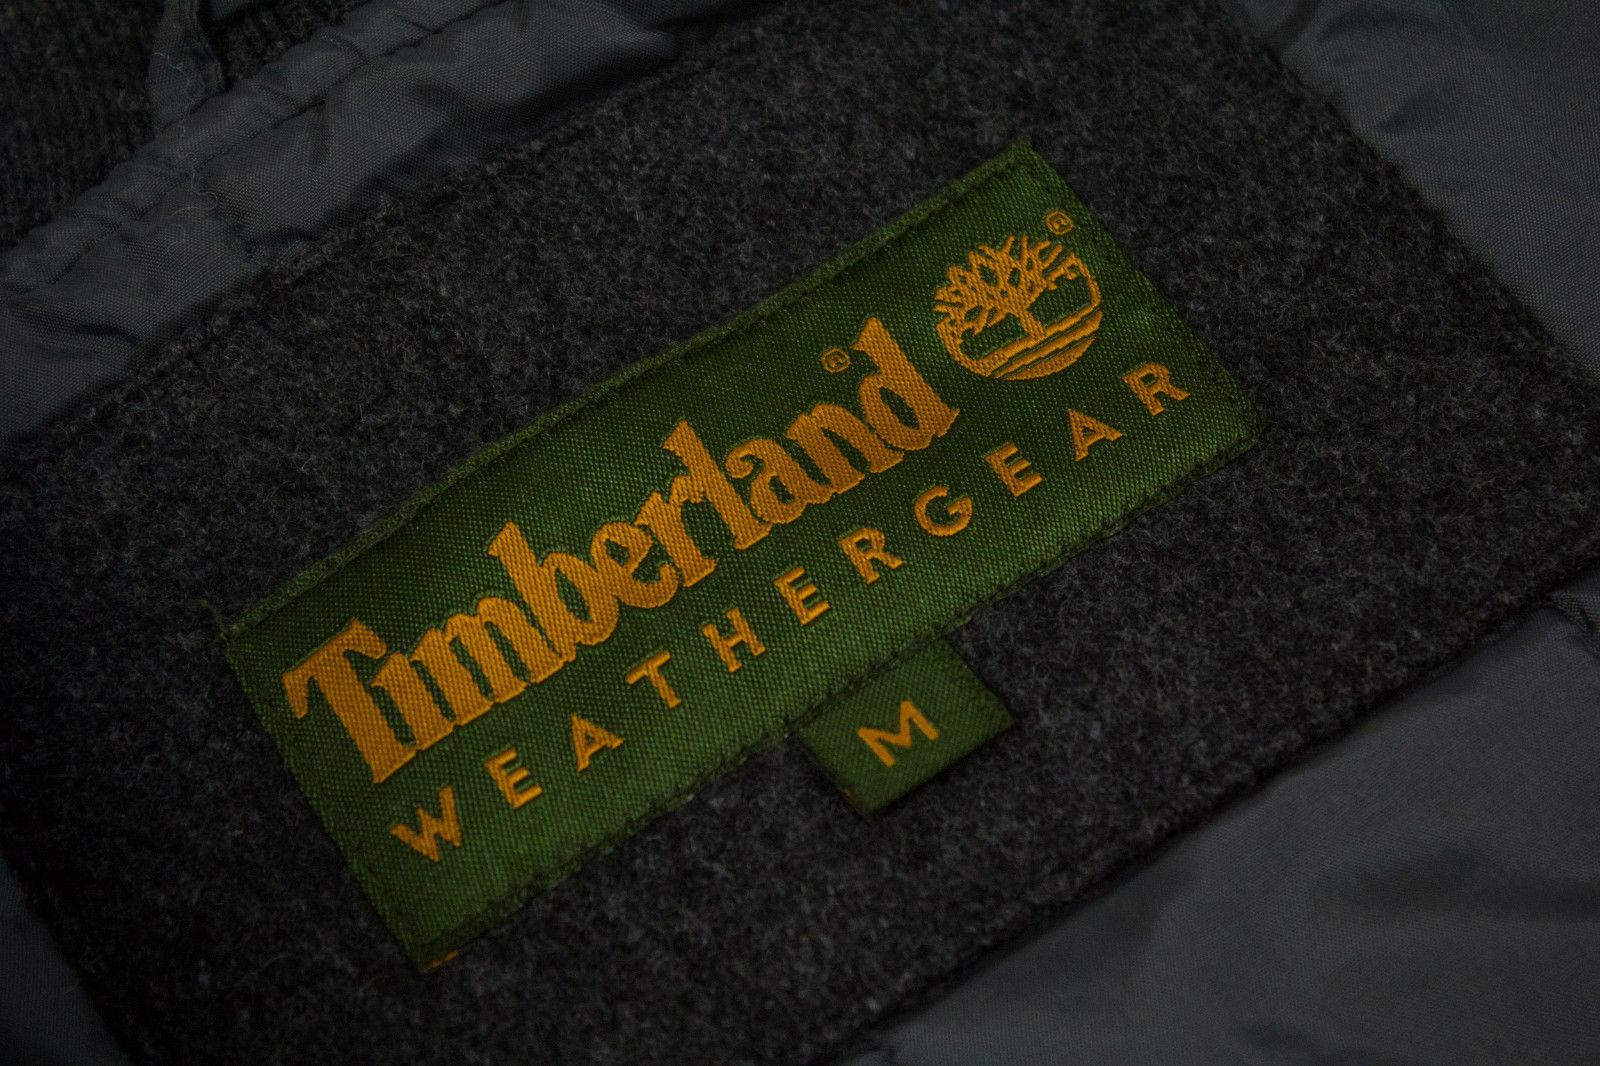 TIMBERLAND Weathergear Wool/Leather Varsity Jacket SIZE L - secondfirst